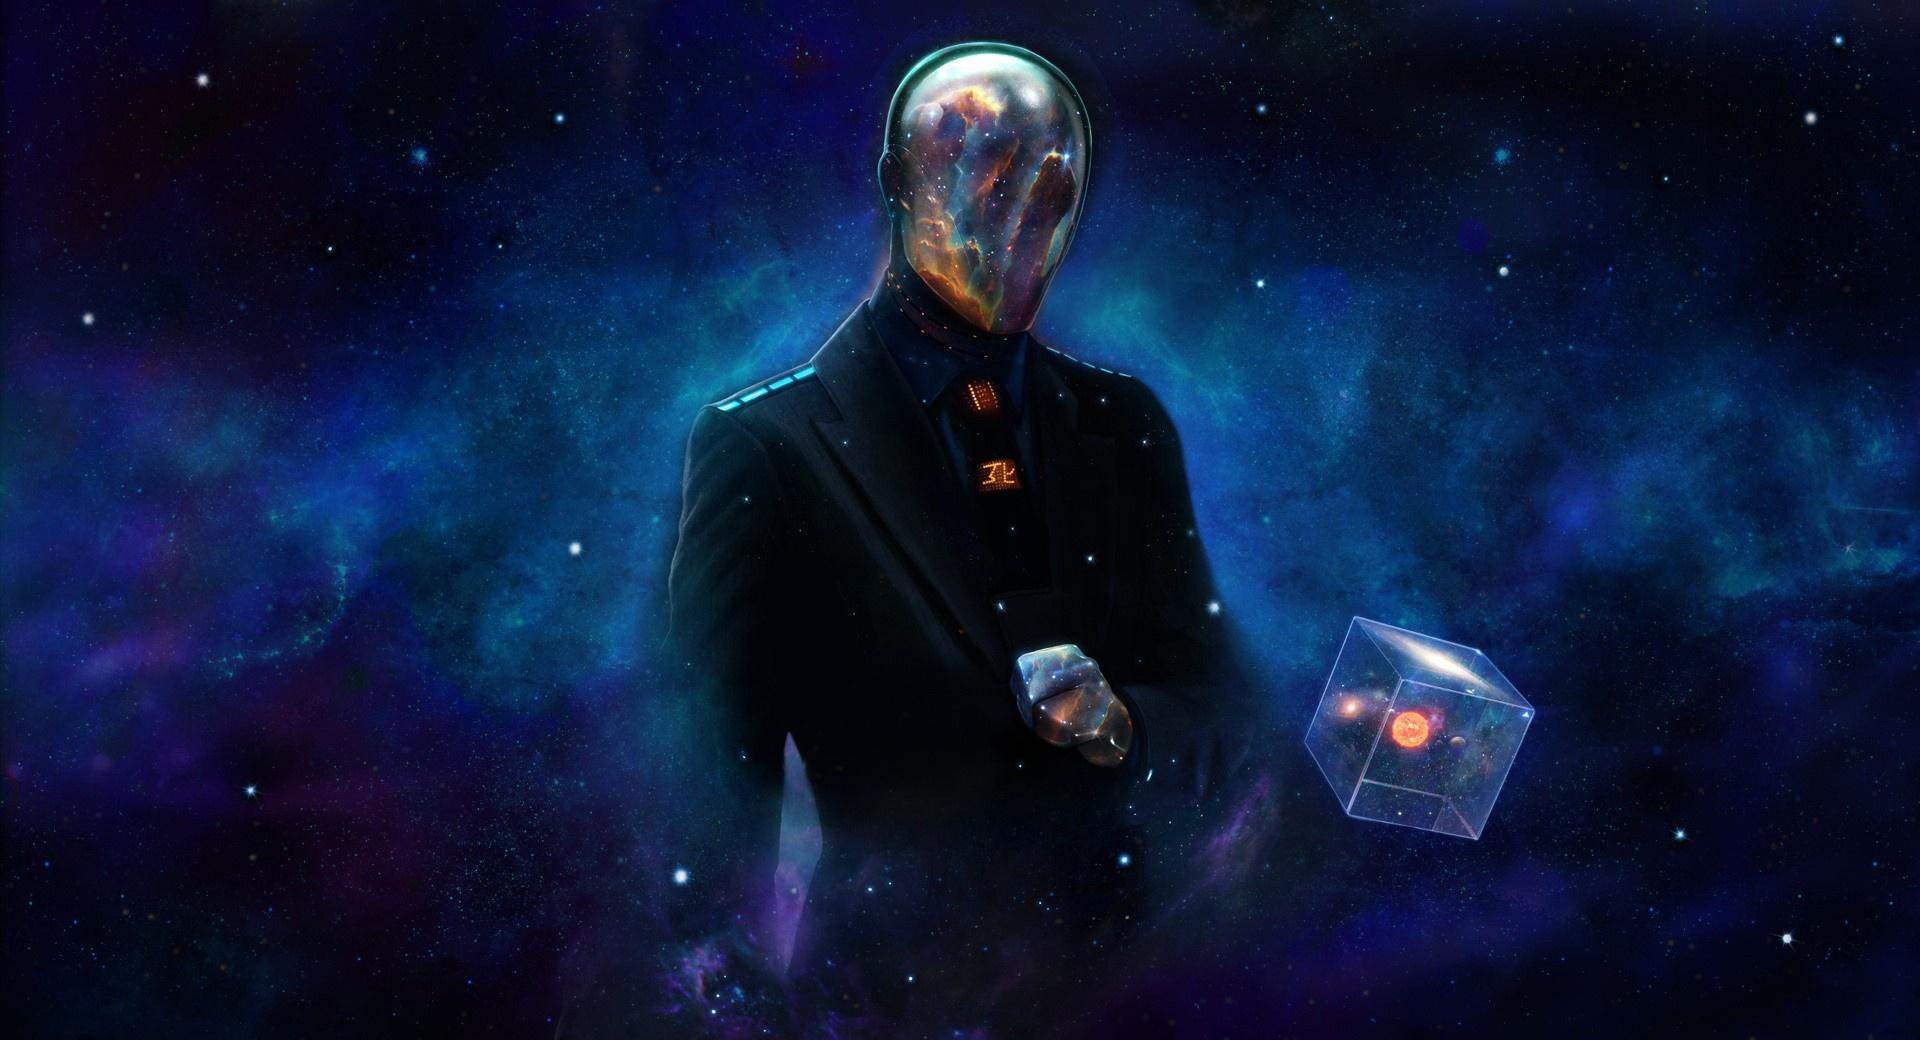 Galaxy Man at 1280 x 960 size wallpapers HD quality